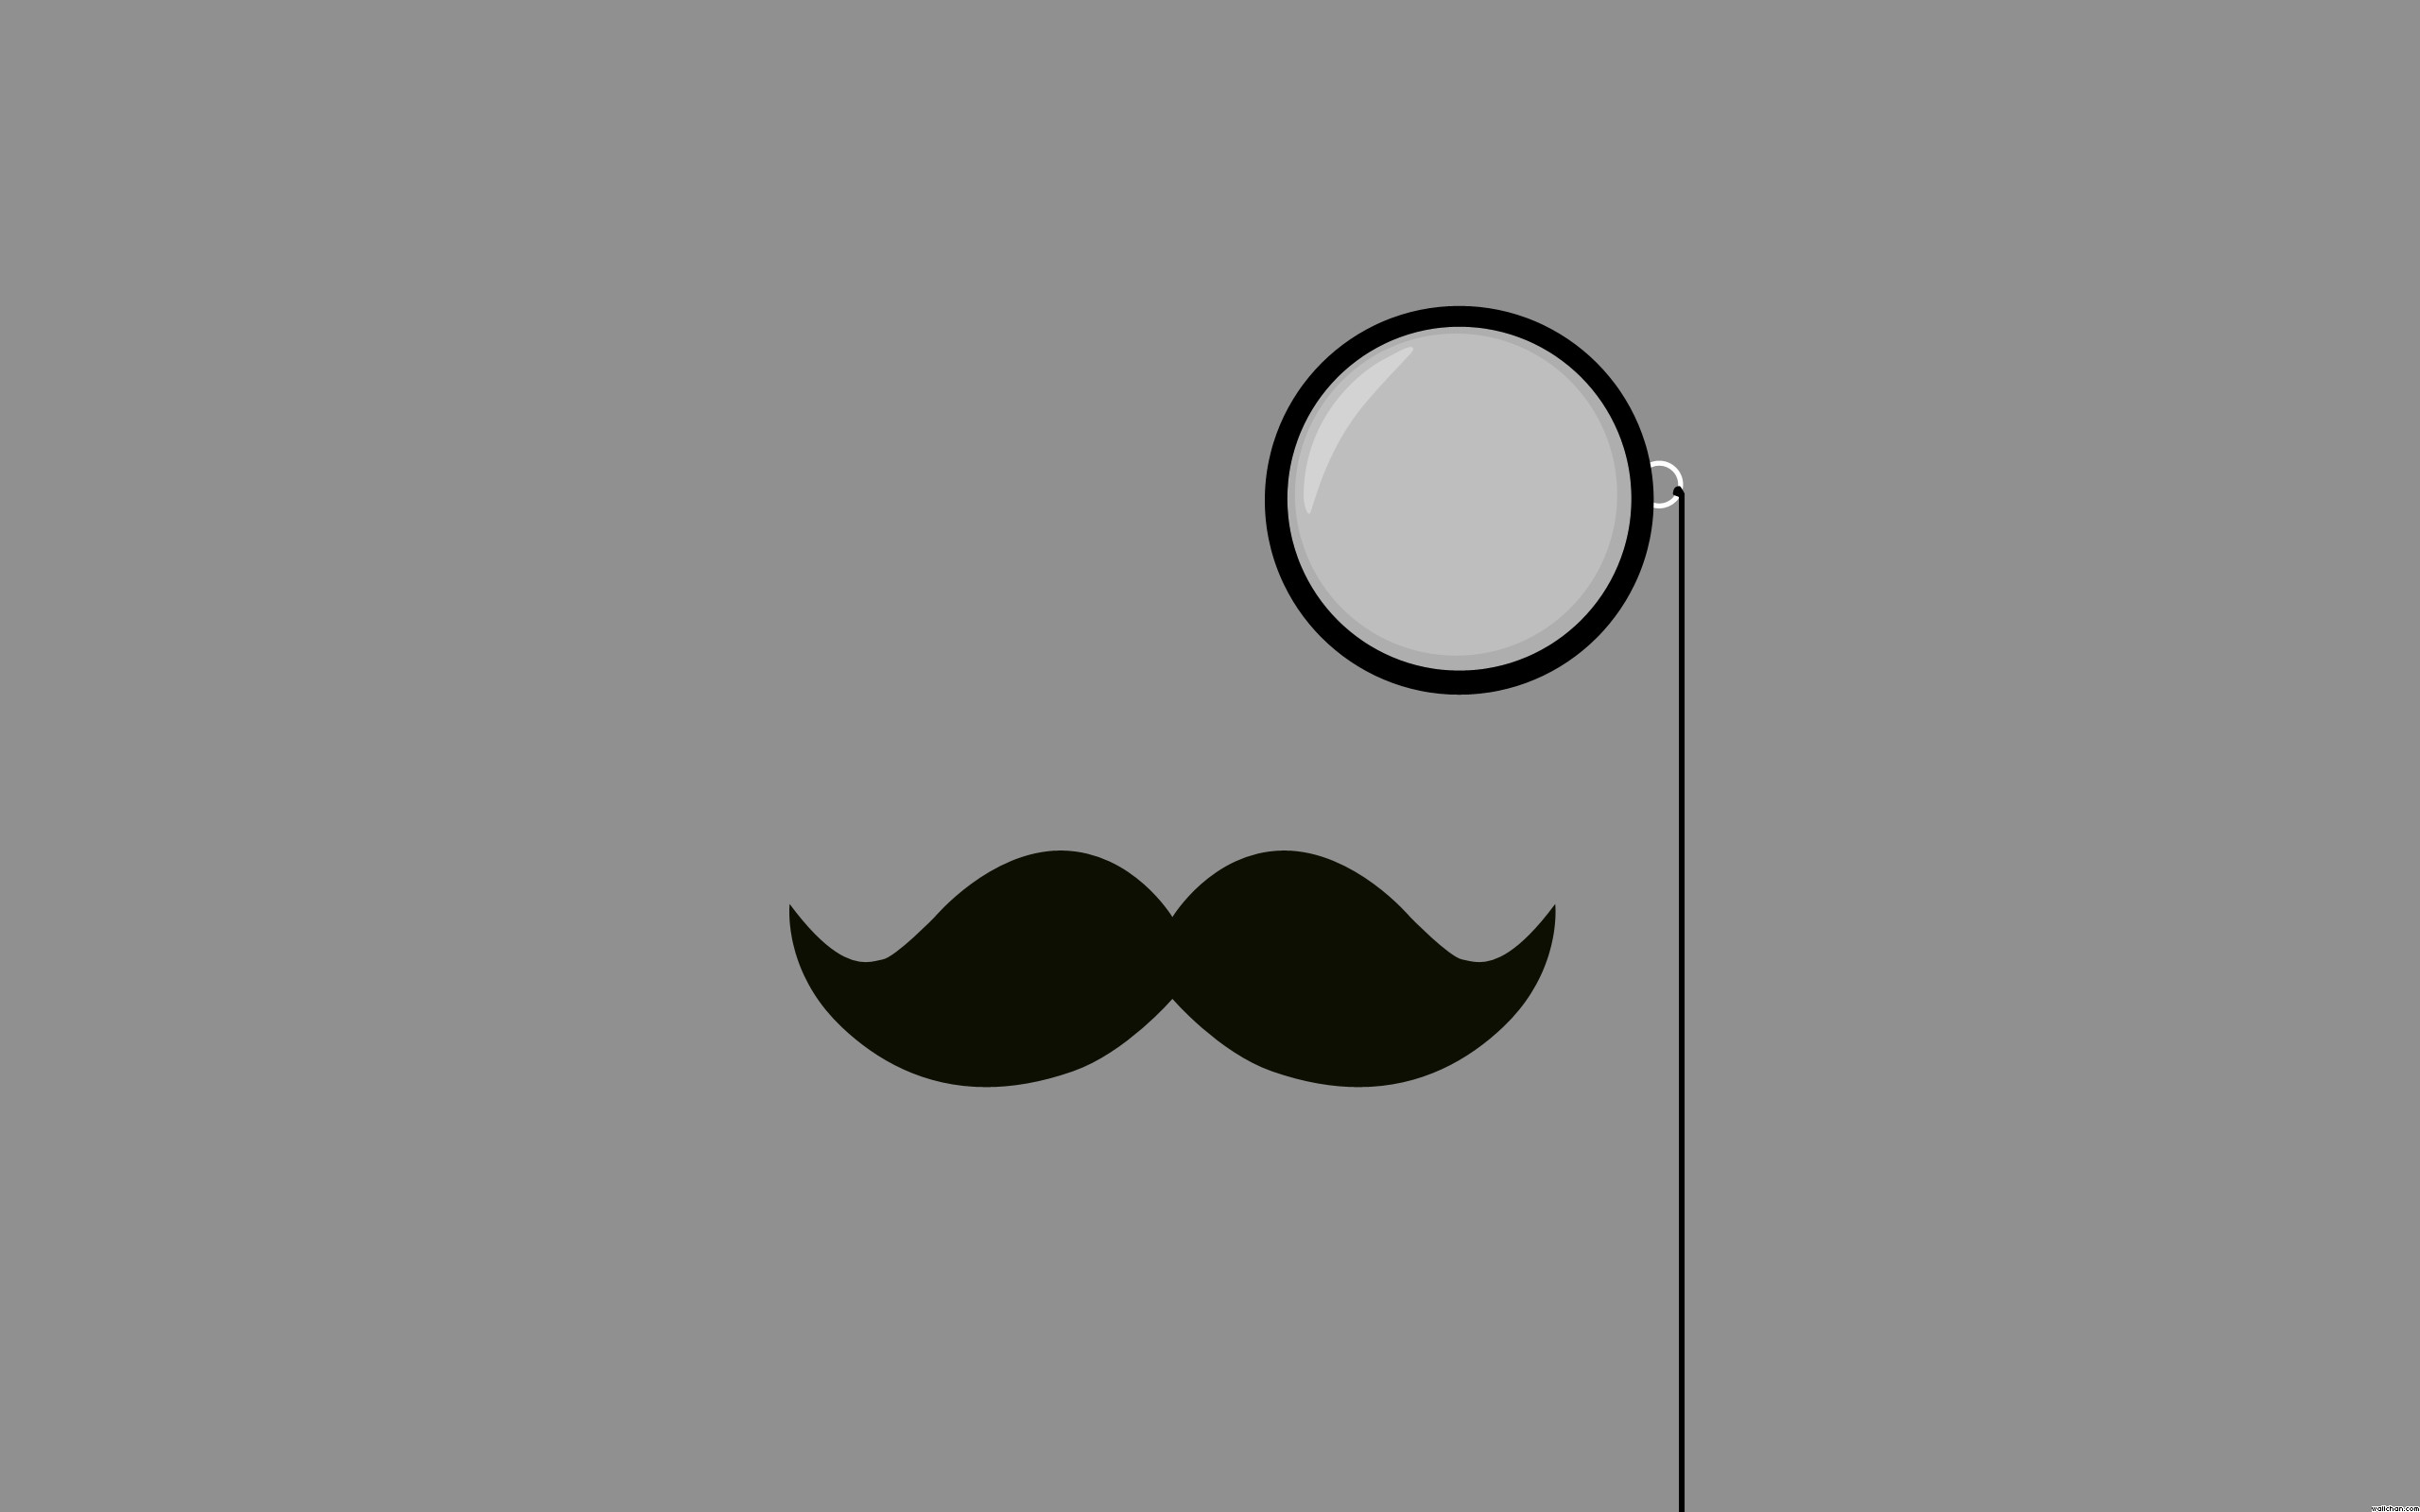 2560x1600 Amazing 780848586 Mustache Wallpapers |  px